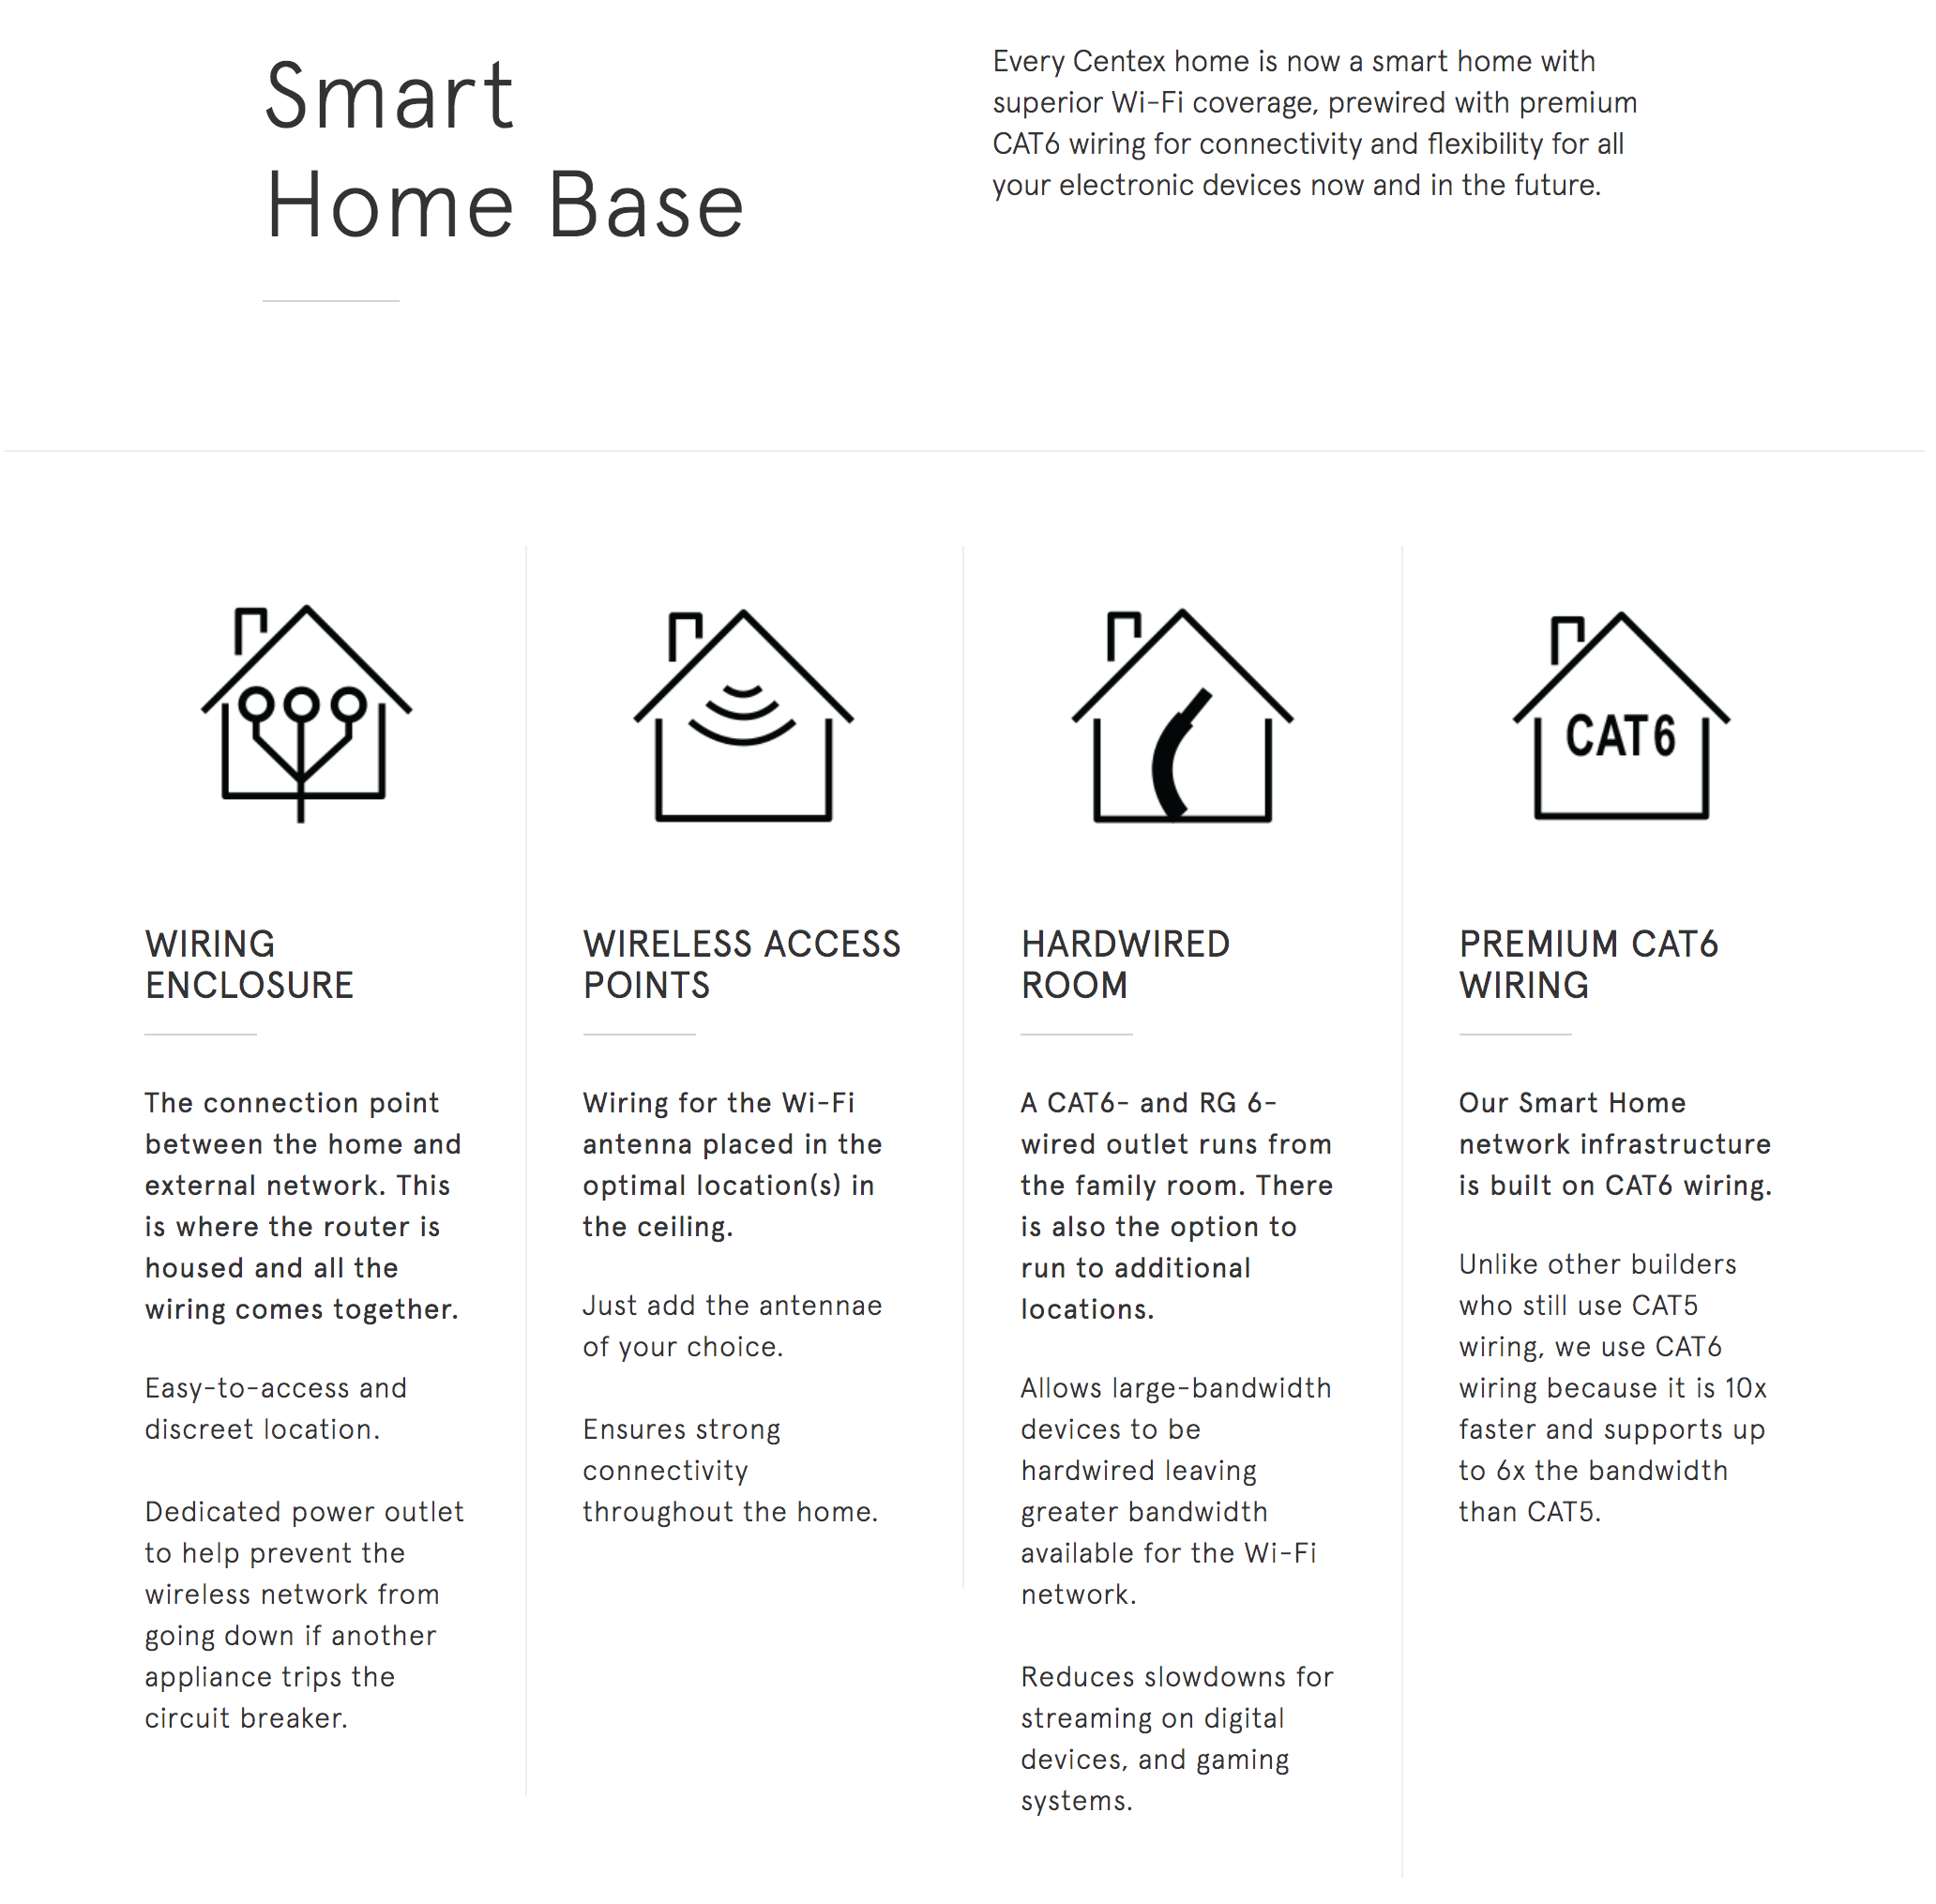 basic smart home features in a new centex home